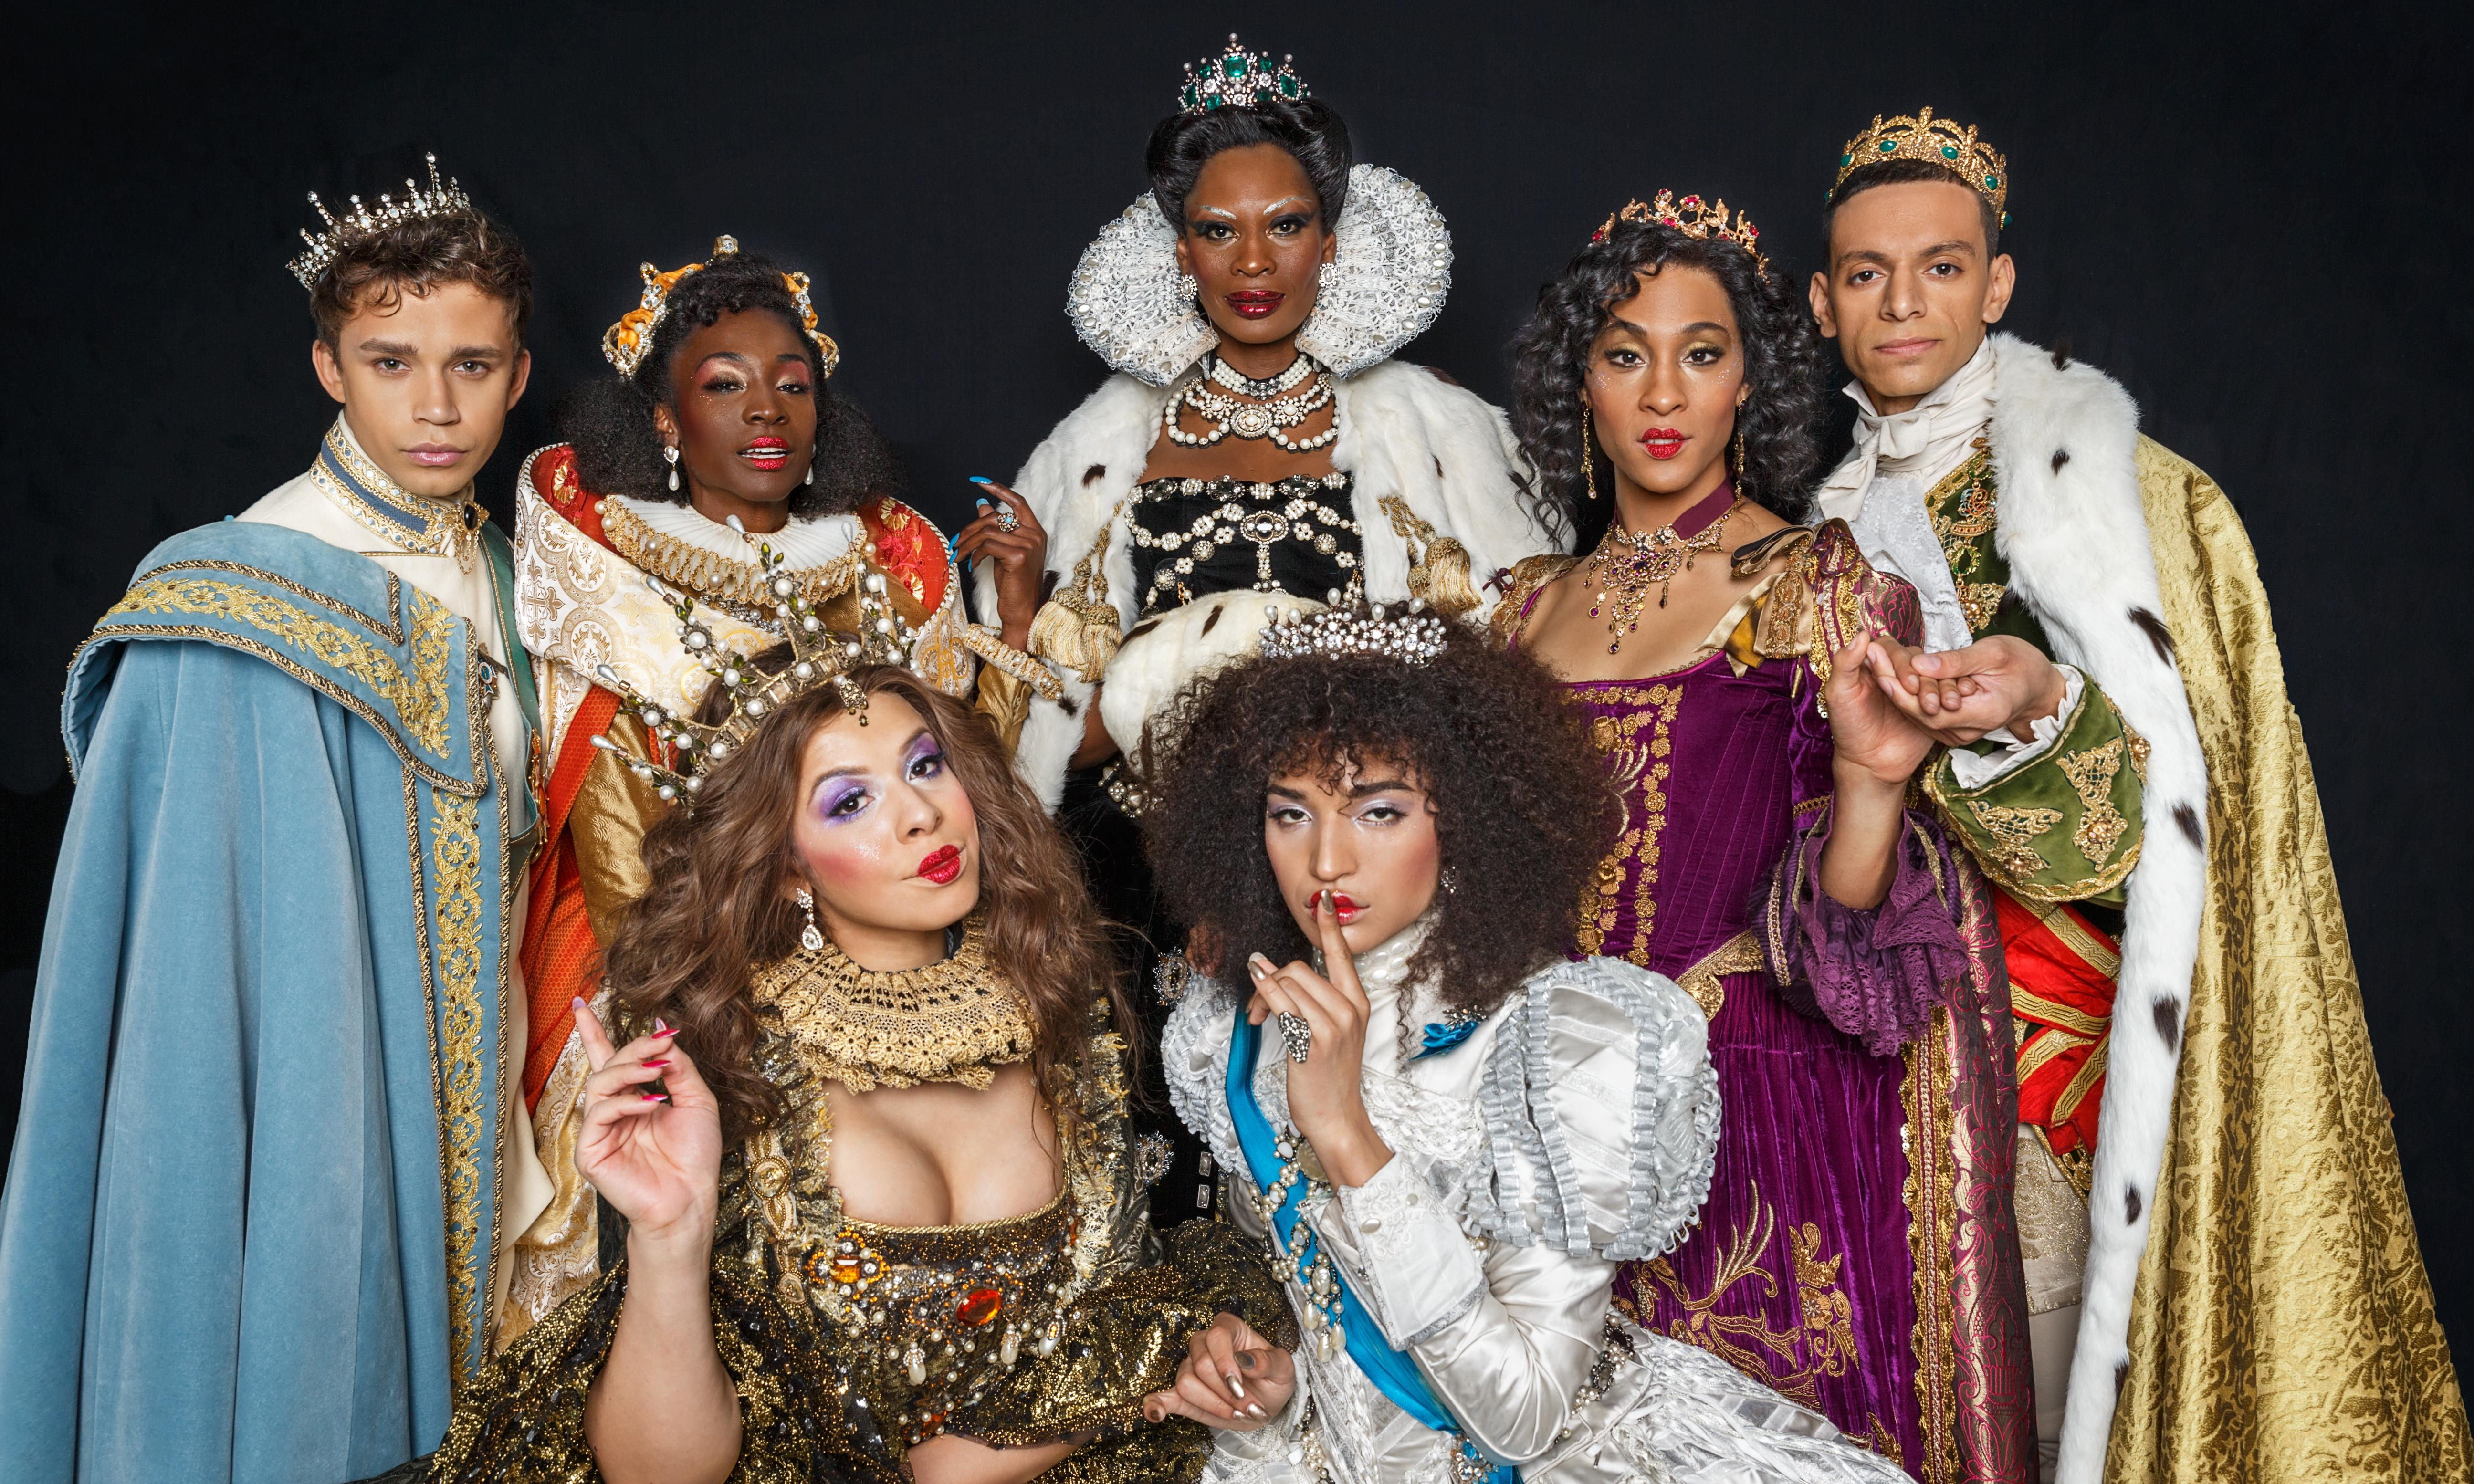 The cast of TV drama Pose: 'Without us Madonna would be nothing'